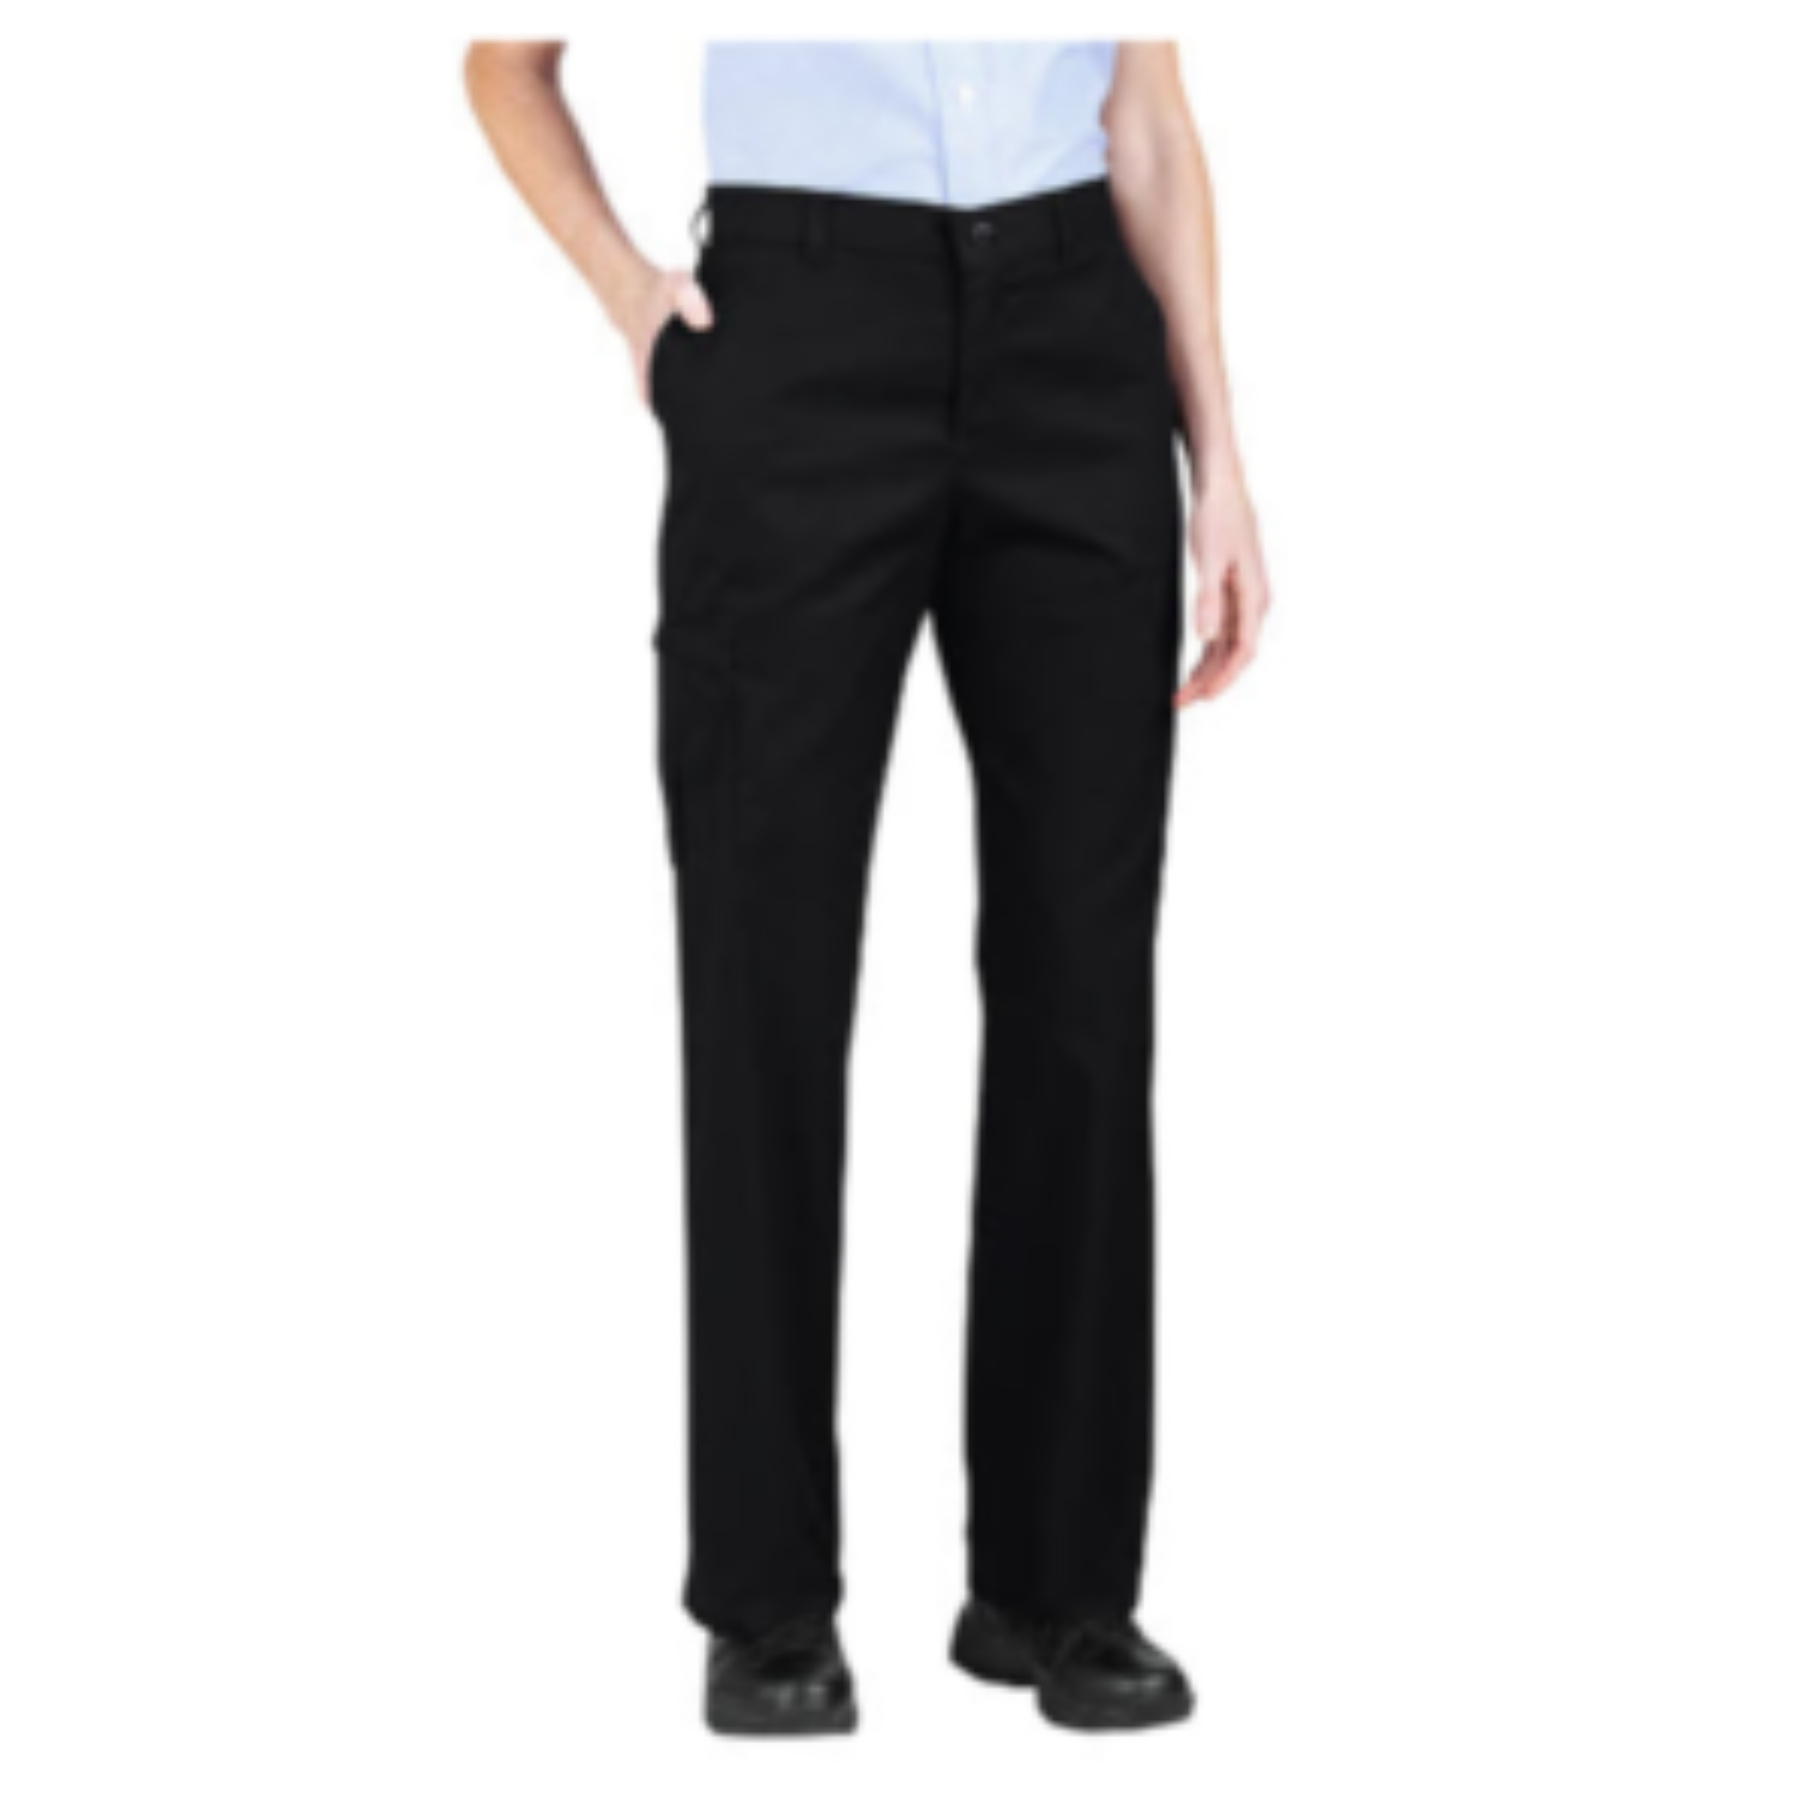 women s exercise cargo pants photo - 2